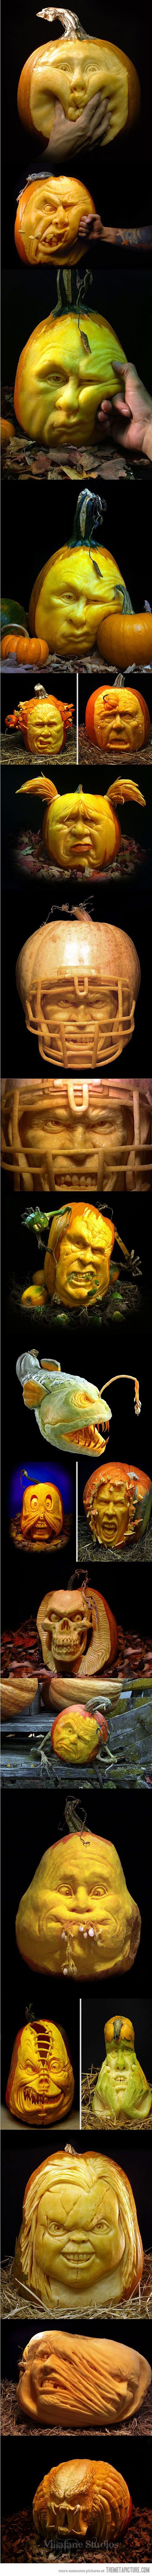 Amazeballs.: Pumpkin Art, Idea, Brilliant Pumpkin, Awesome, Halloween Pumpkin, Random, Pumpkin Carvings, Funnies, Carvings Pumpkin